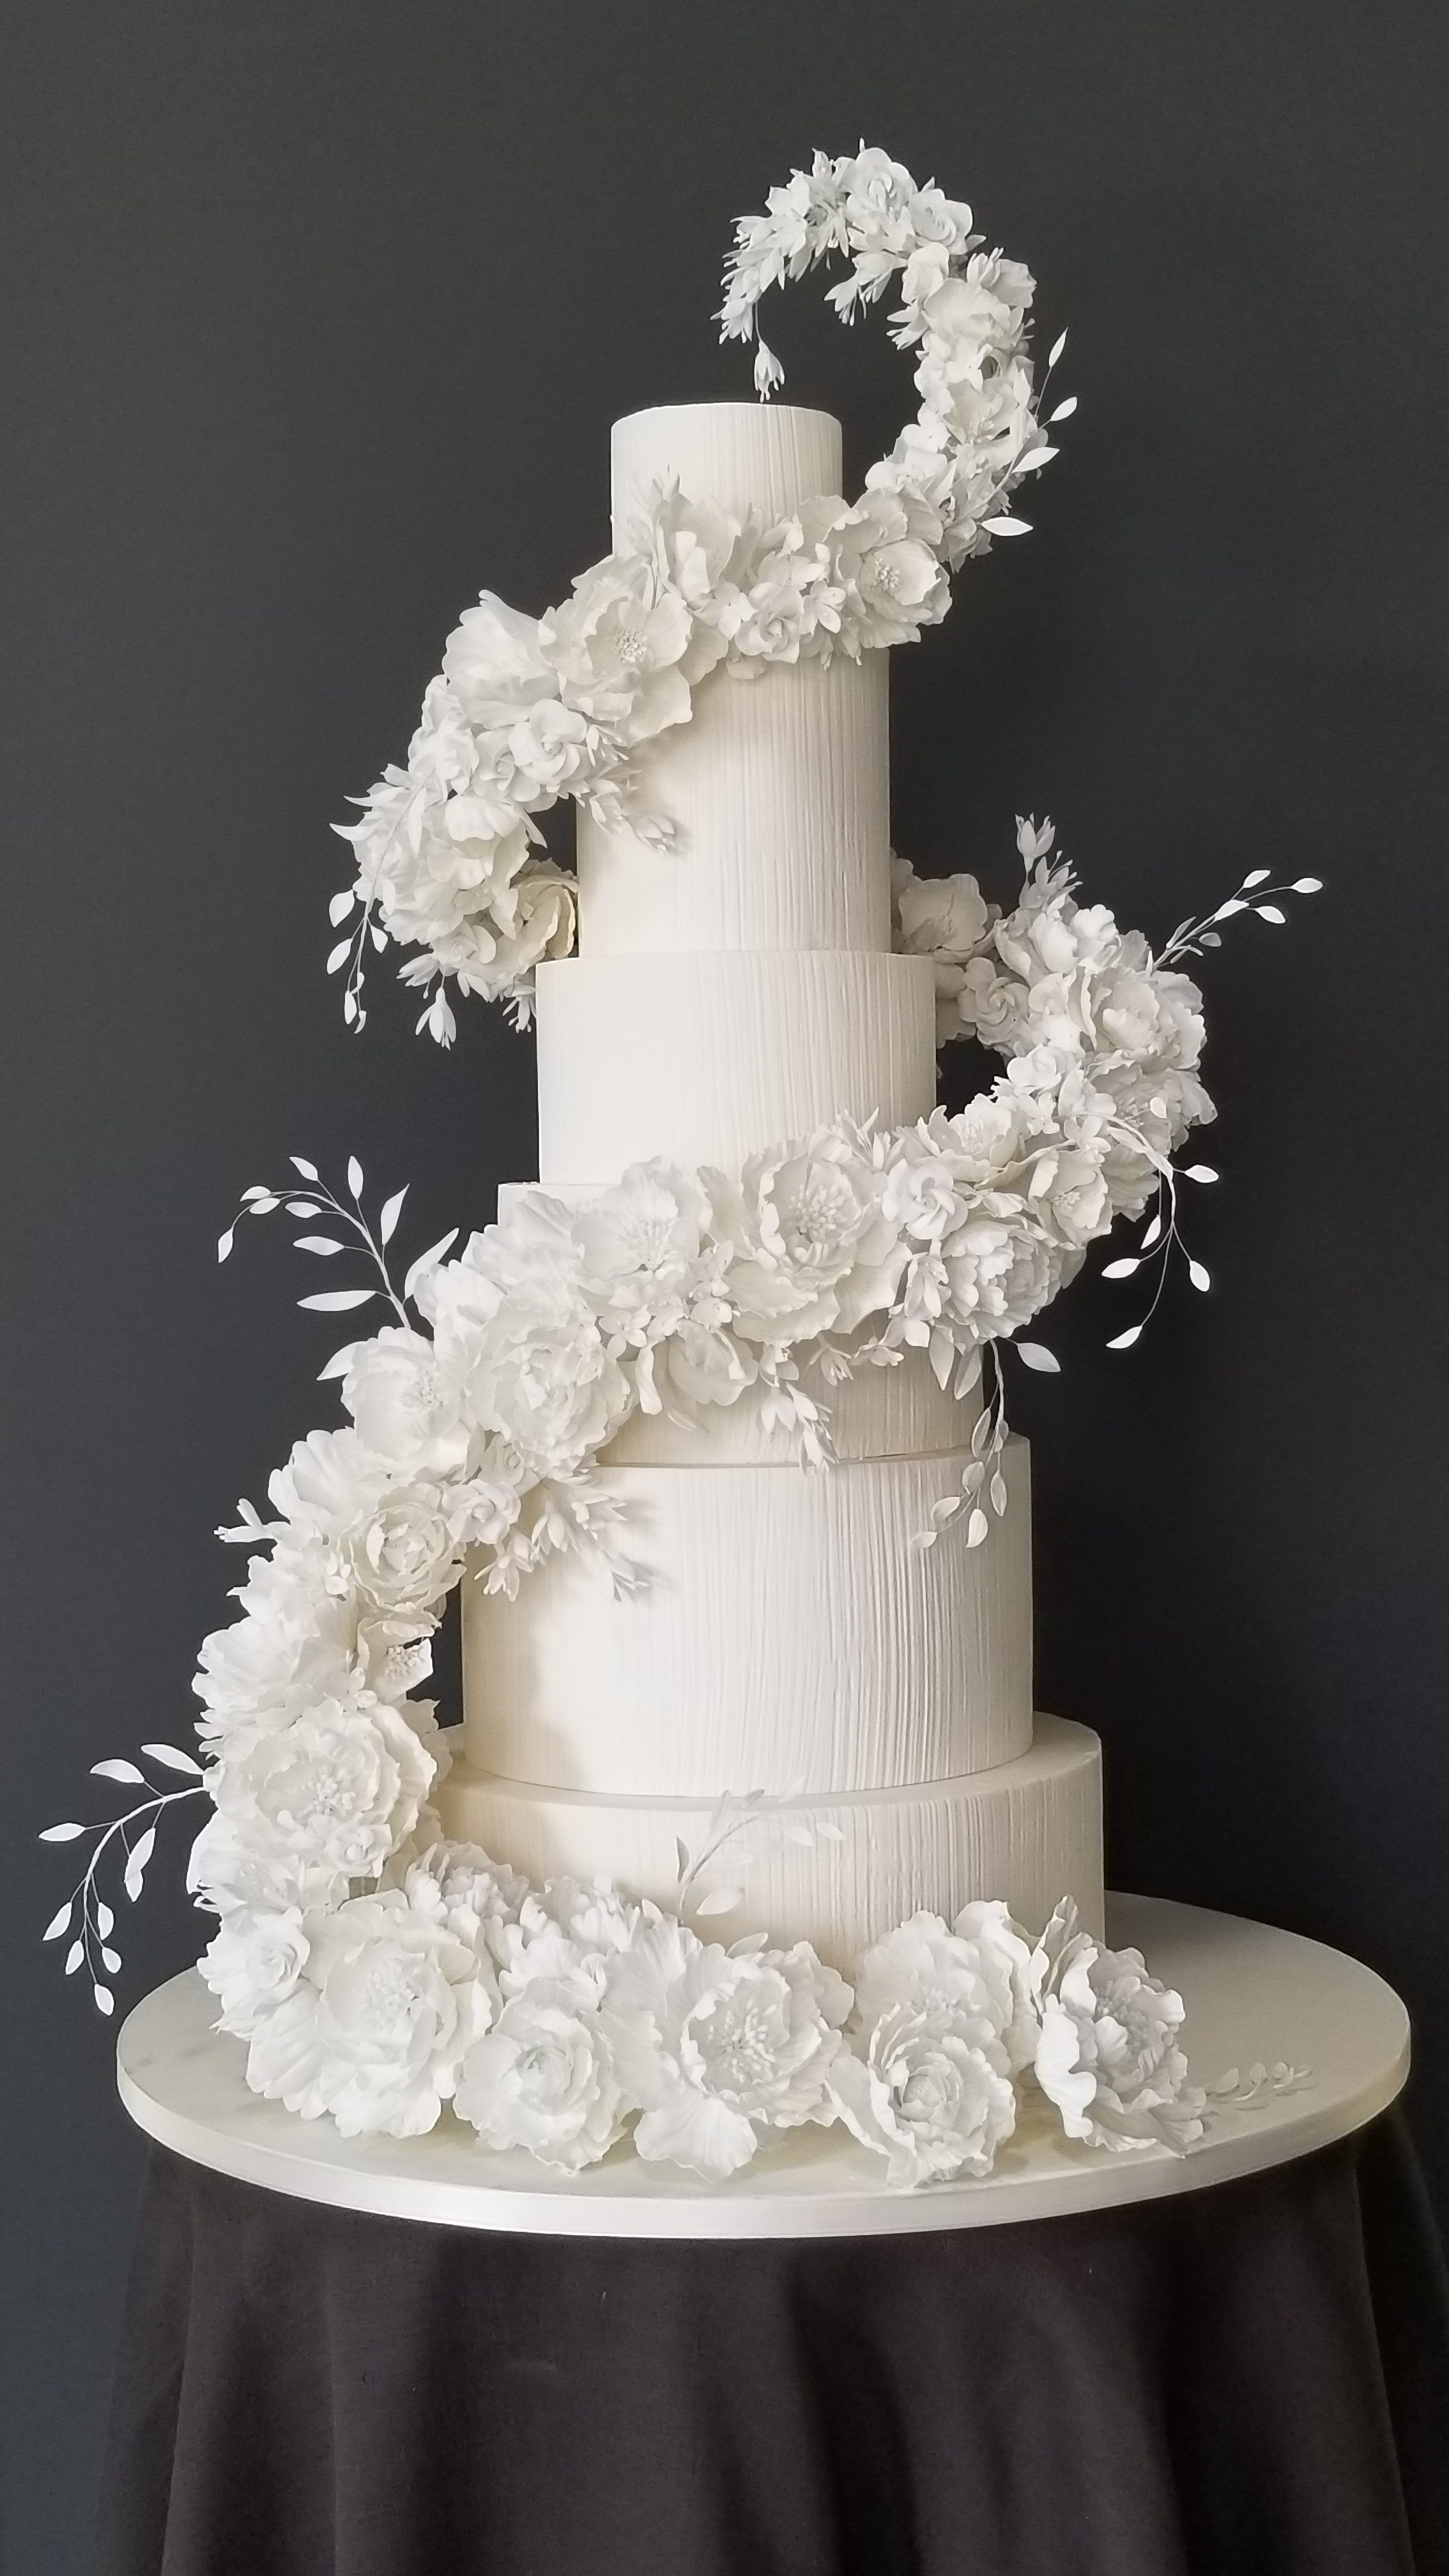 All white wedding cake with cascading white sugar flowers made with ChocoPan by Satin Ice Covering